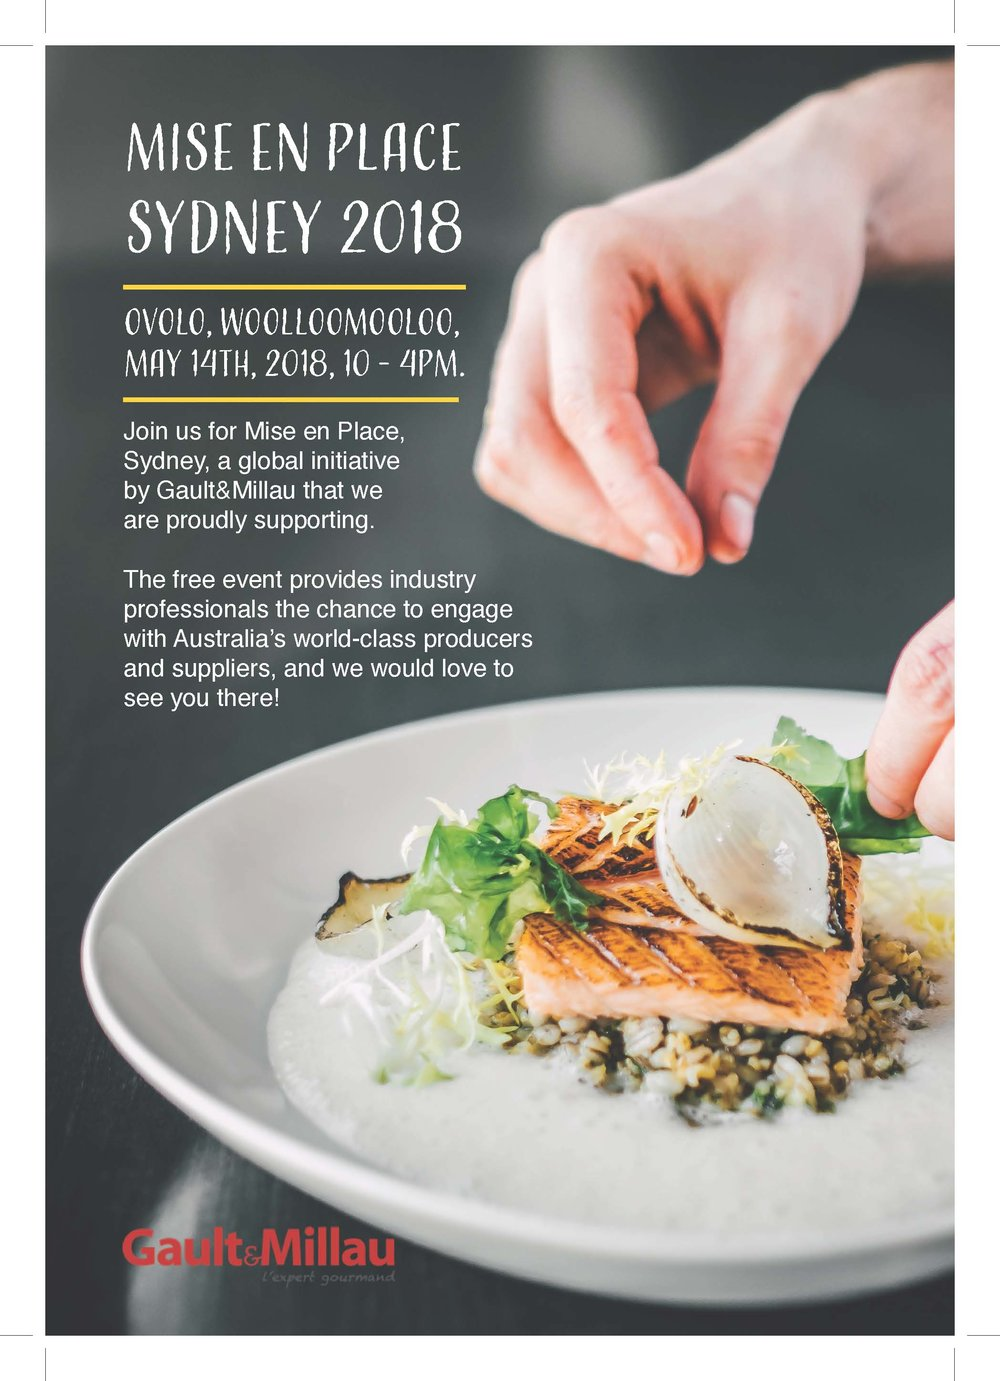 Mise en Place will return to Sydney for its fourth year to connect restaurant professionals with Australia's world-class producers and suppliers. This year's event will feature premium exhibitors, masterclasses and cooking demonstrations as well as the announcement of the 2018 awards finalists.  -